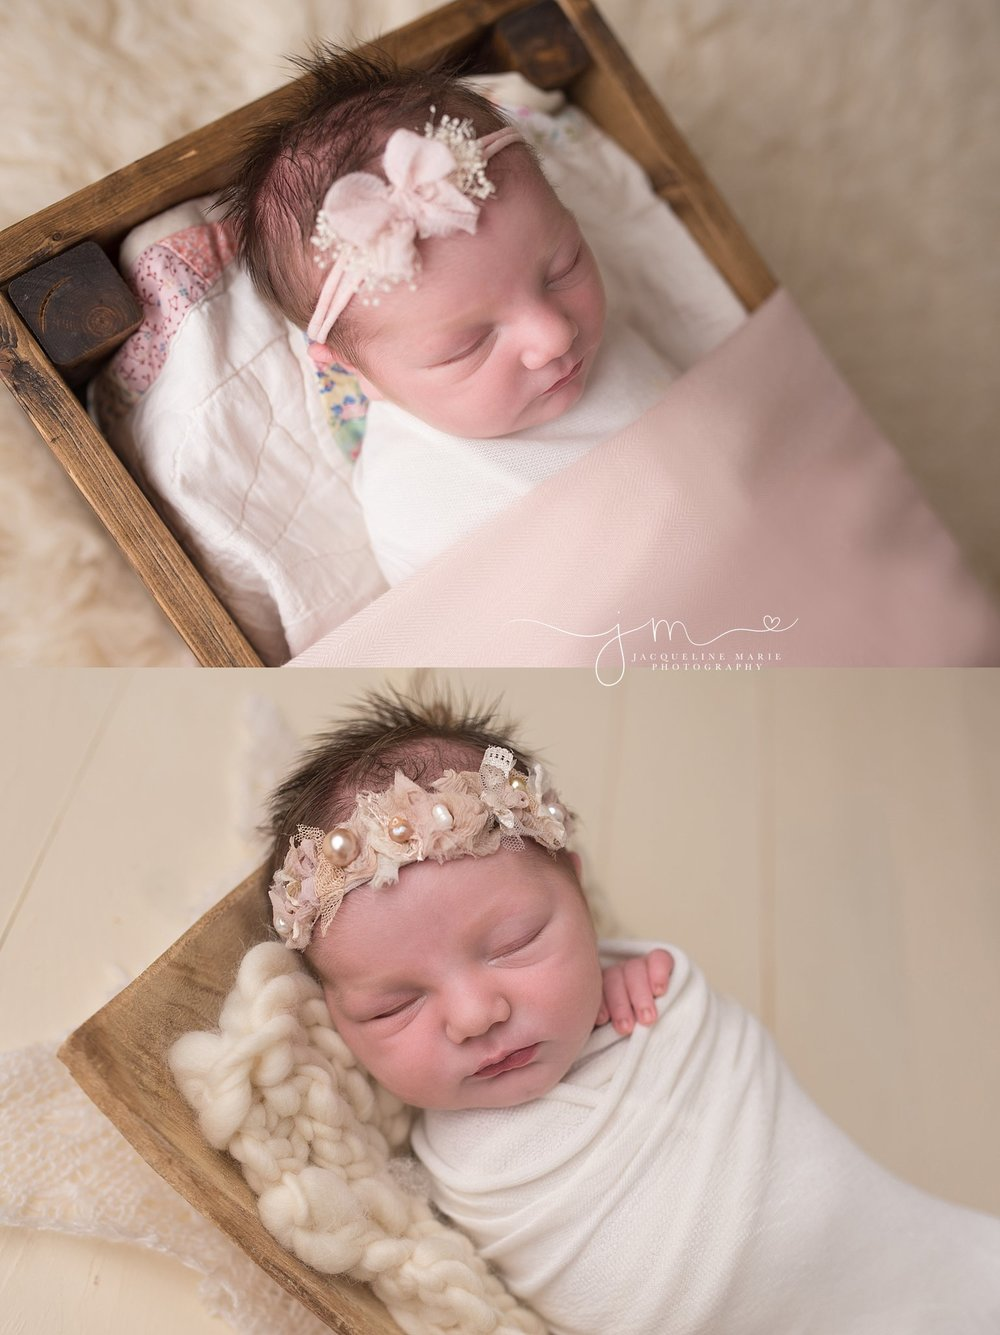 Soft pastel and neutral colors are featured in newborn portrait of sleeping two week old baby girl in Columbus Ohio